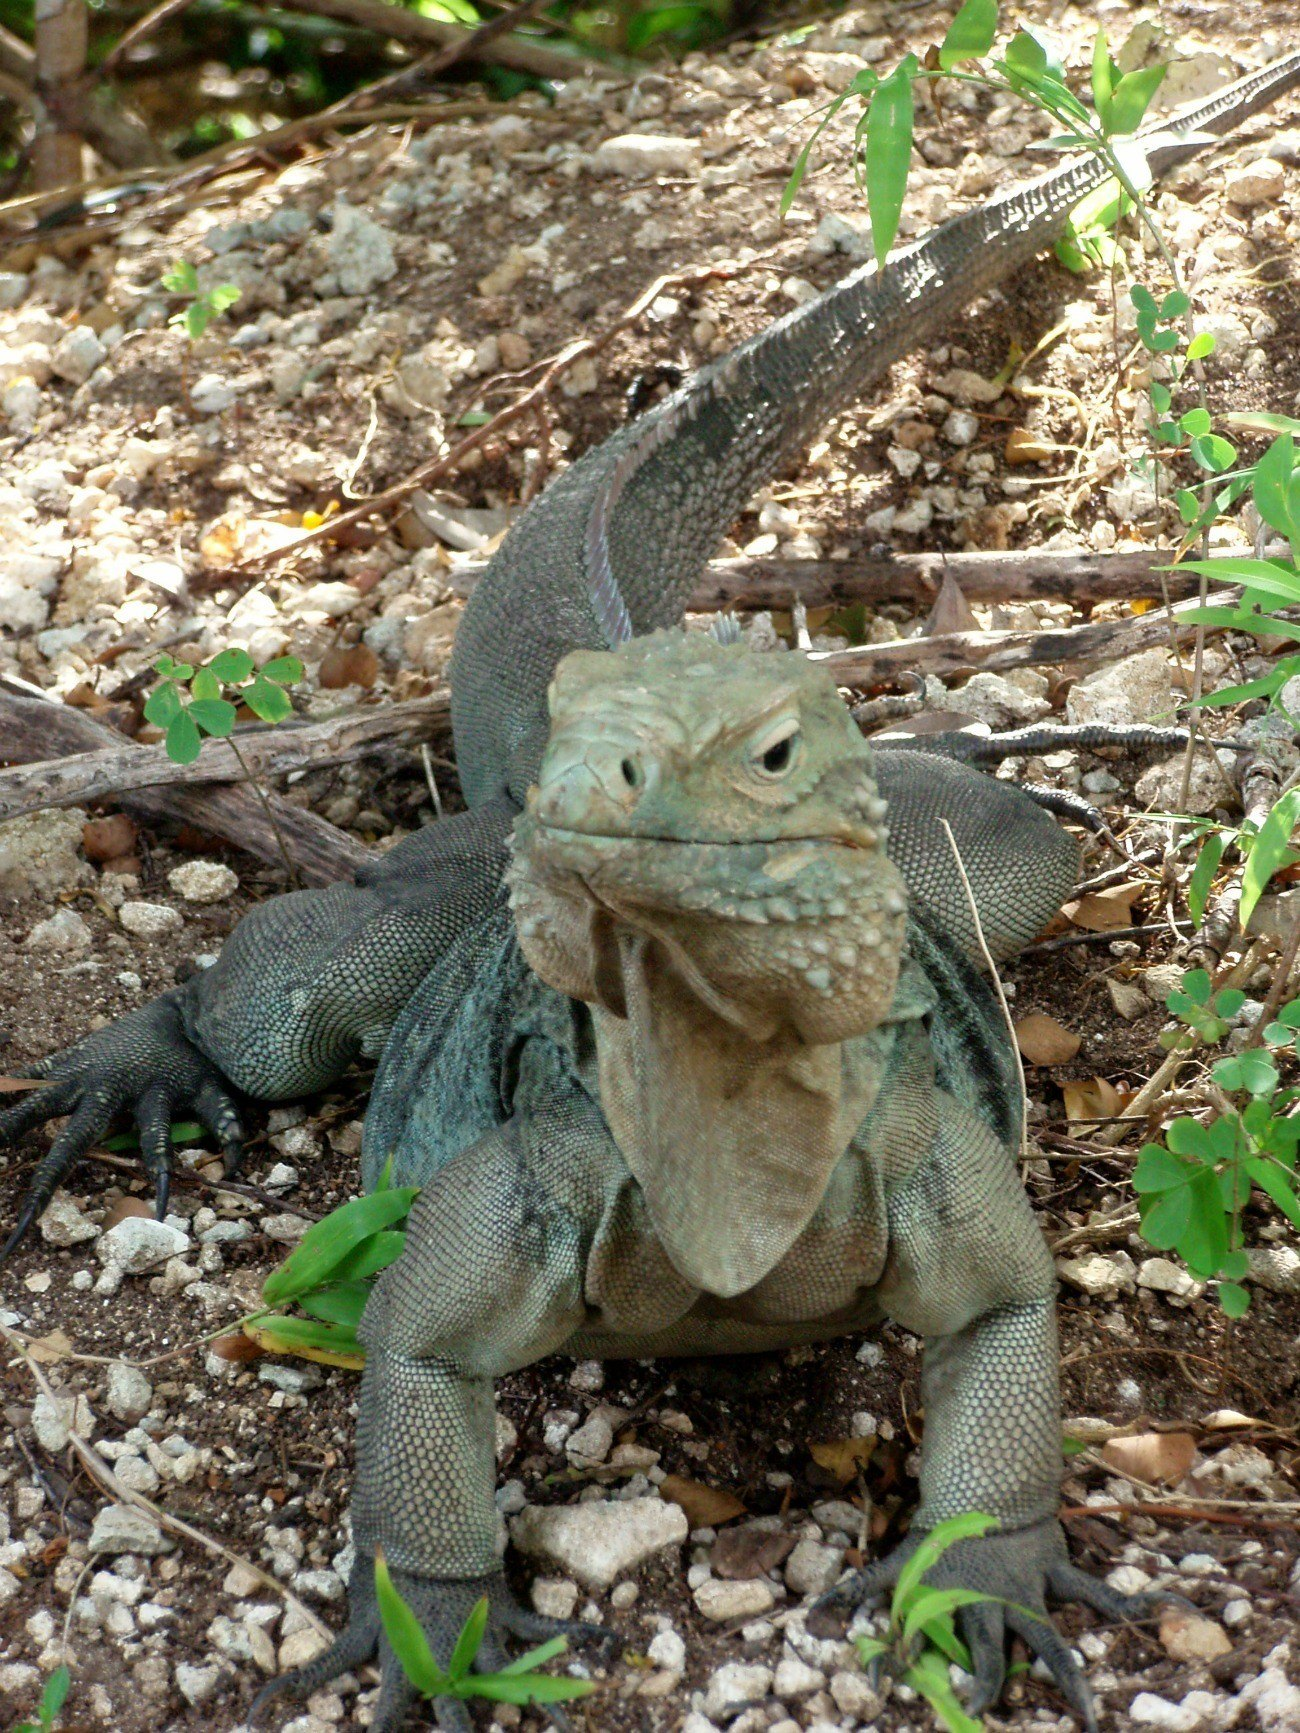 The endangered Cayman Blue Iguana can be seen at Grand Cayman's Queen Elizabeth II Royal Botanic Park.